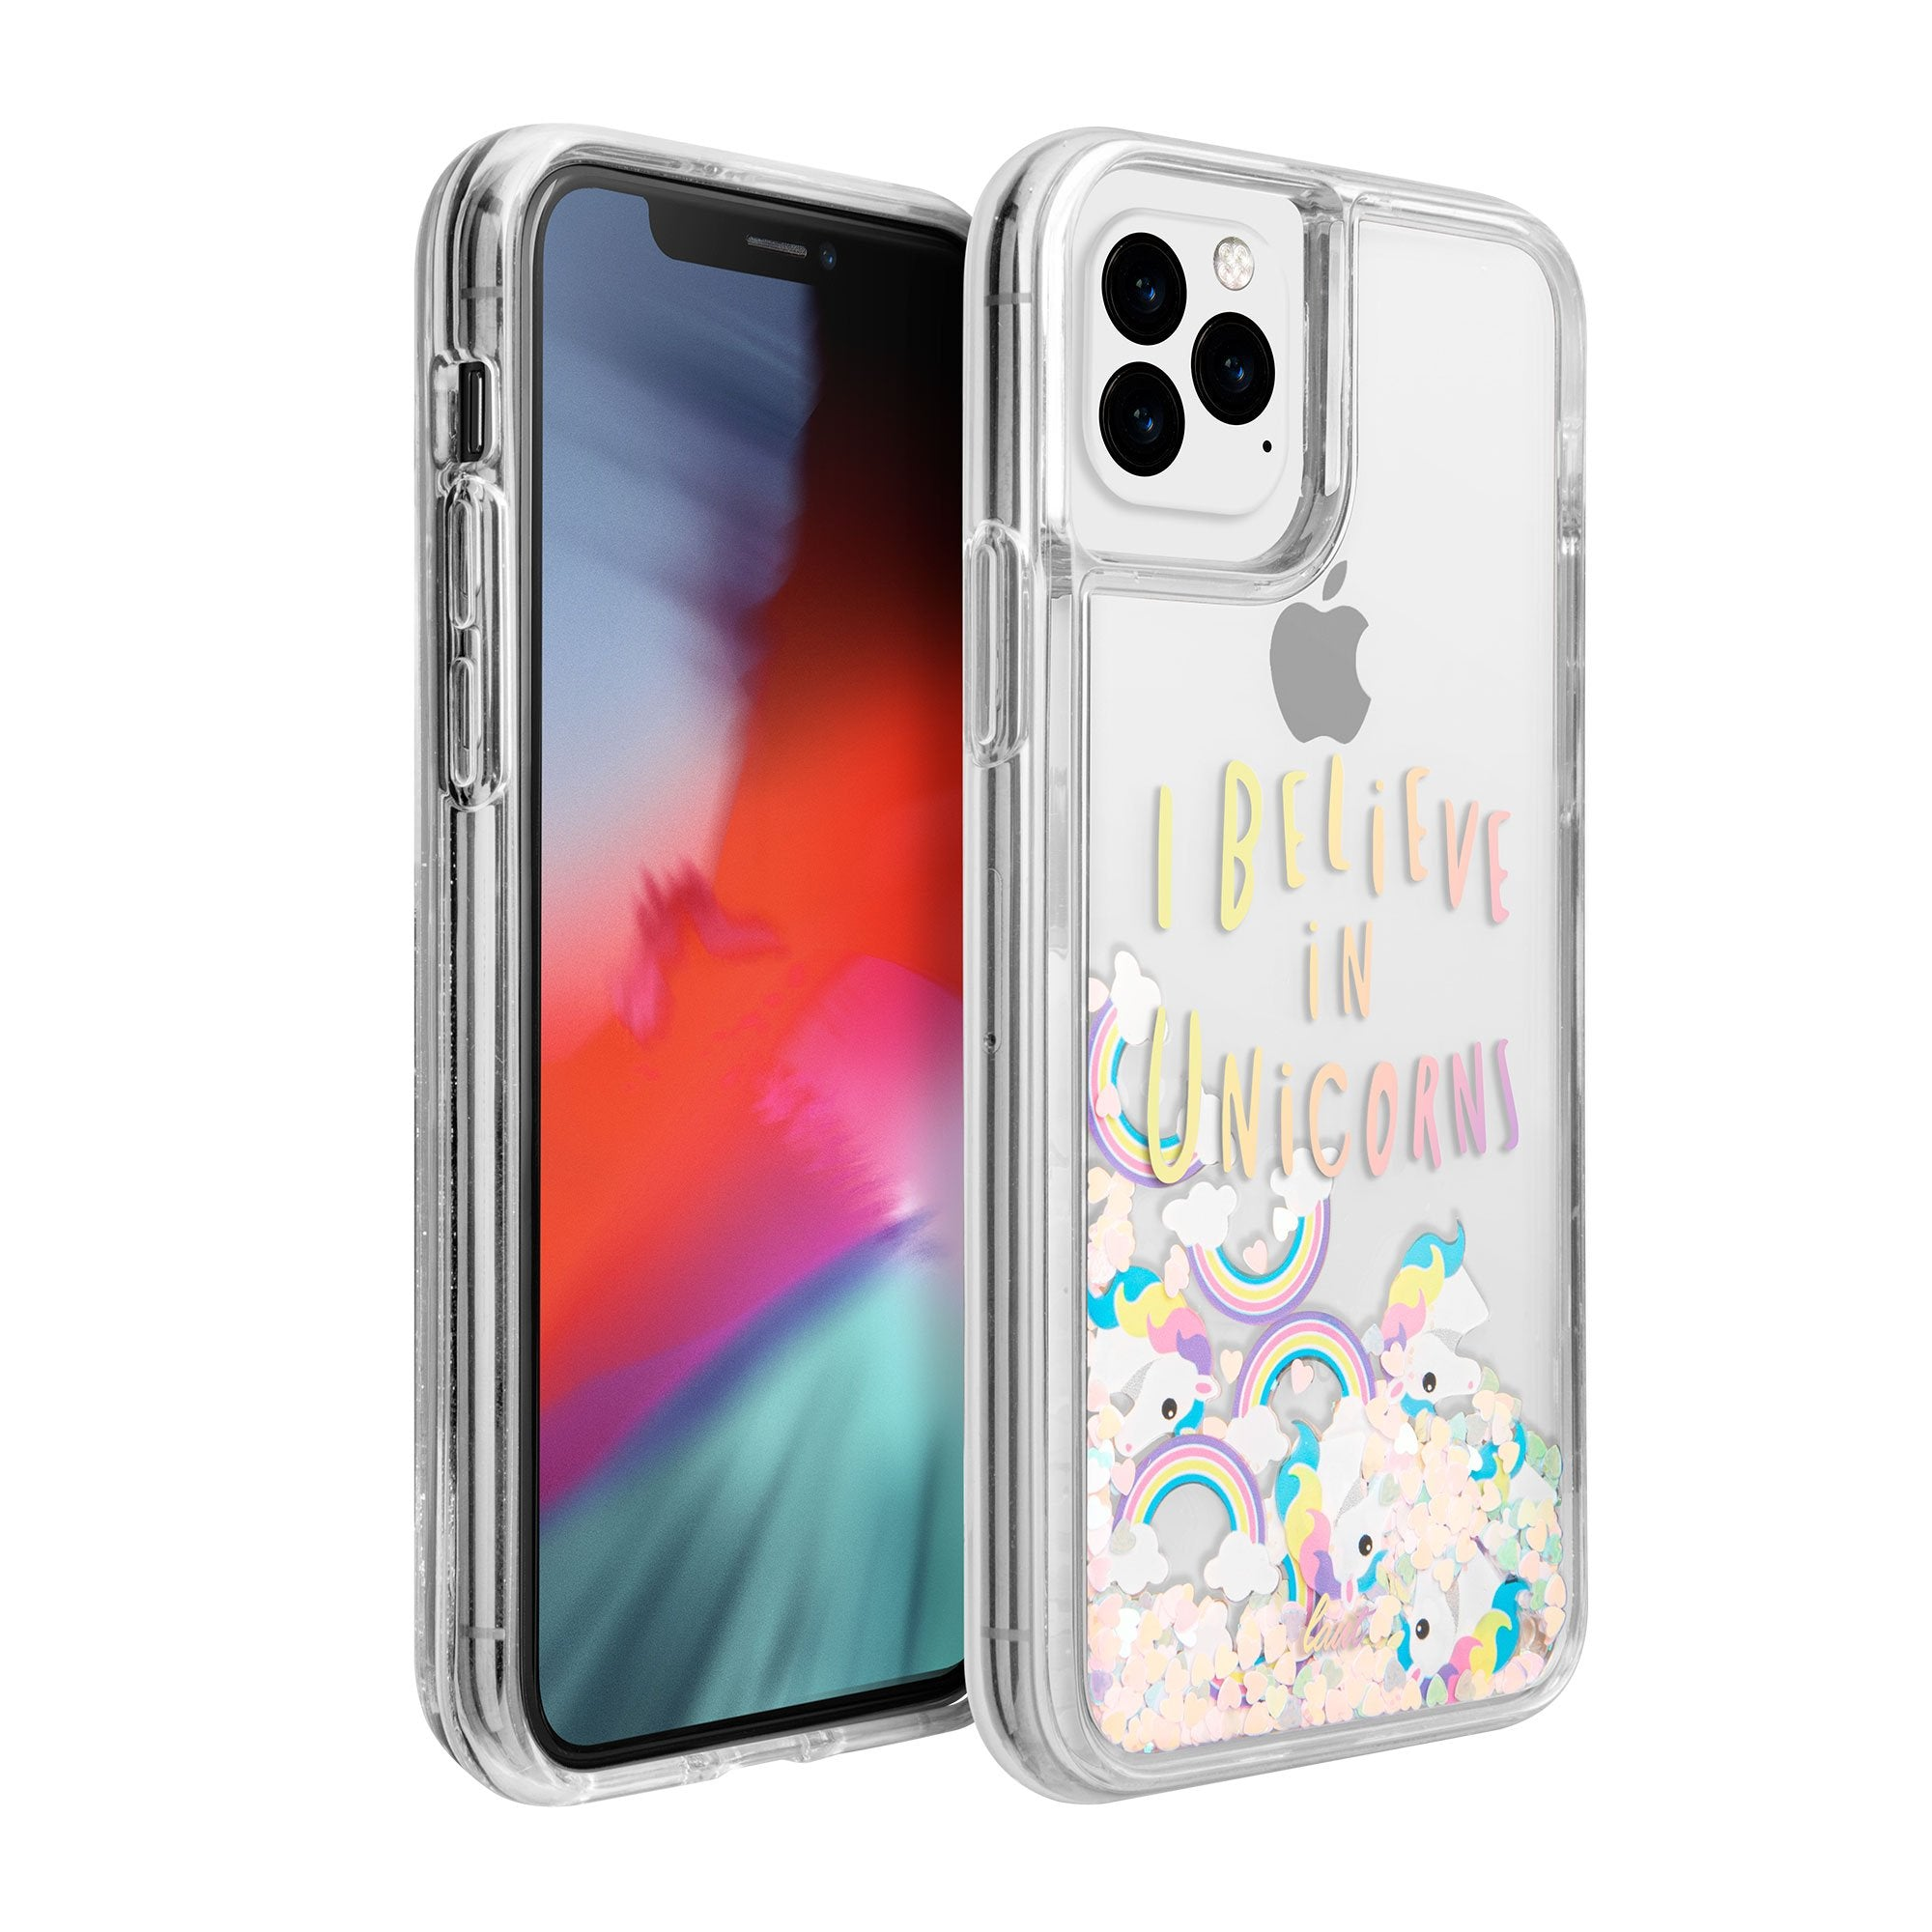 LAUT-GLITTER UNICORNS for iPhone 11 Series-Case-iPhone 11 / iPhone 11 Pro / iPhone 11 Pro Max